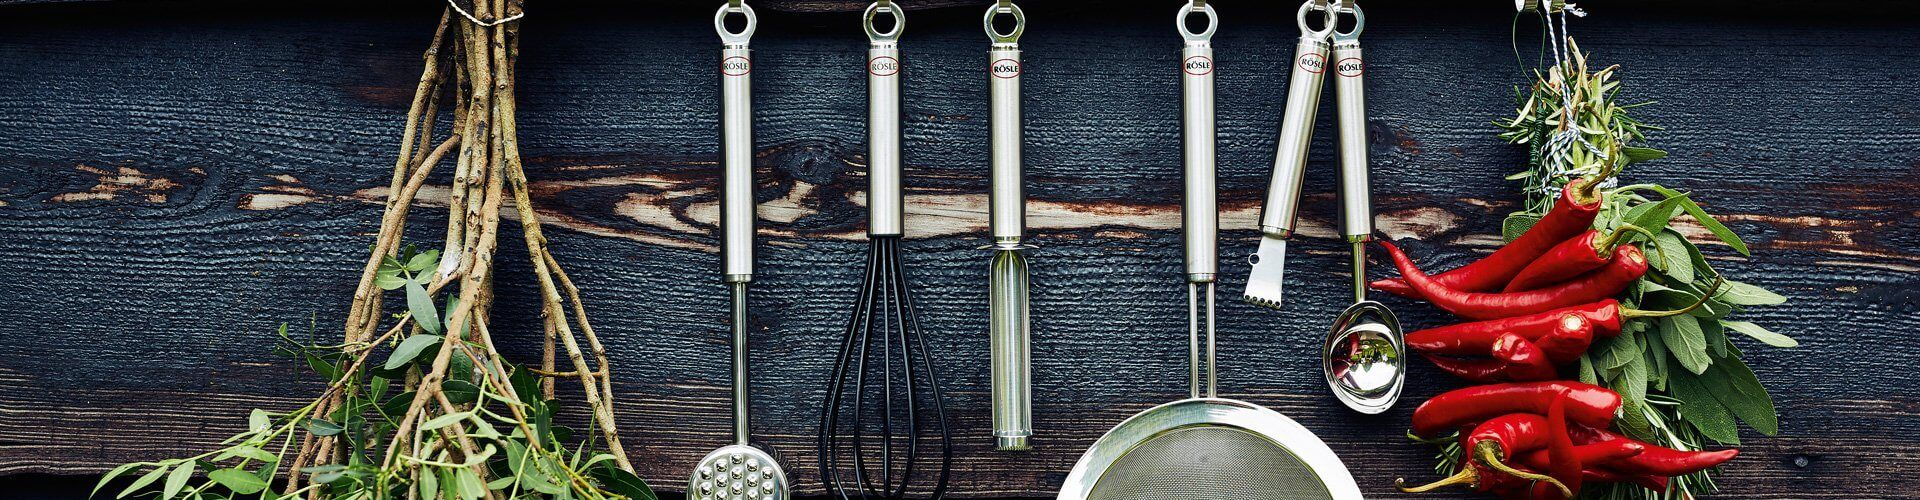 Kitchenware by Home Of Cooking